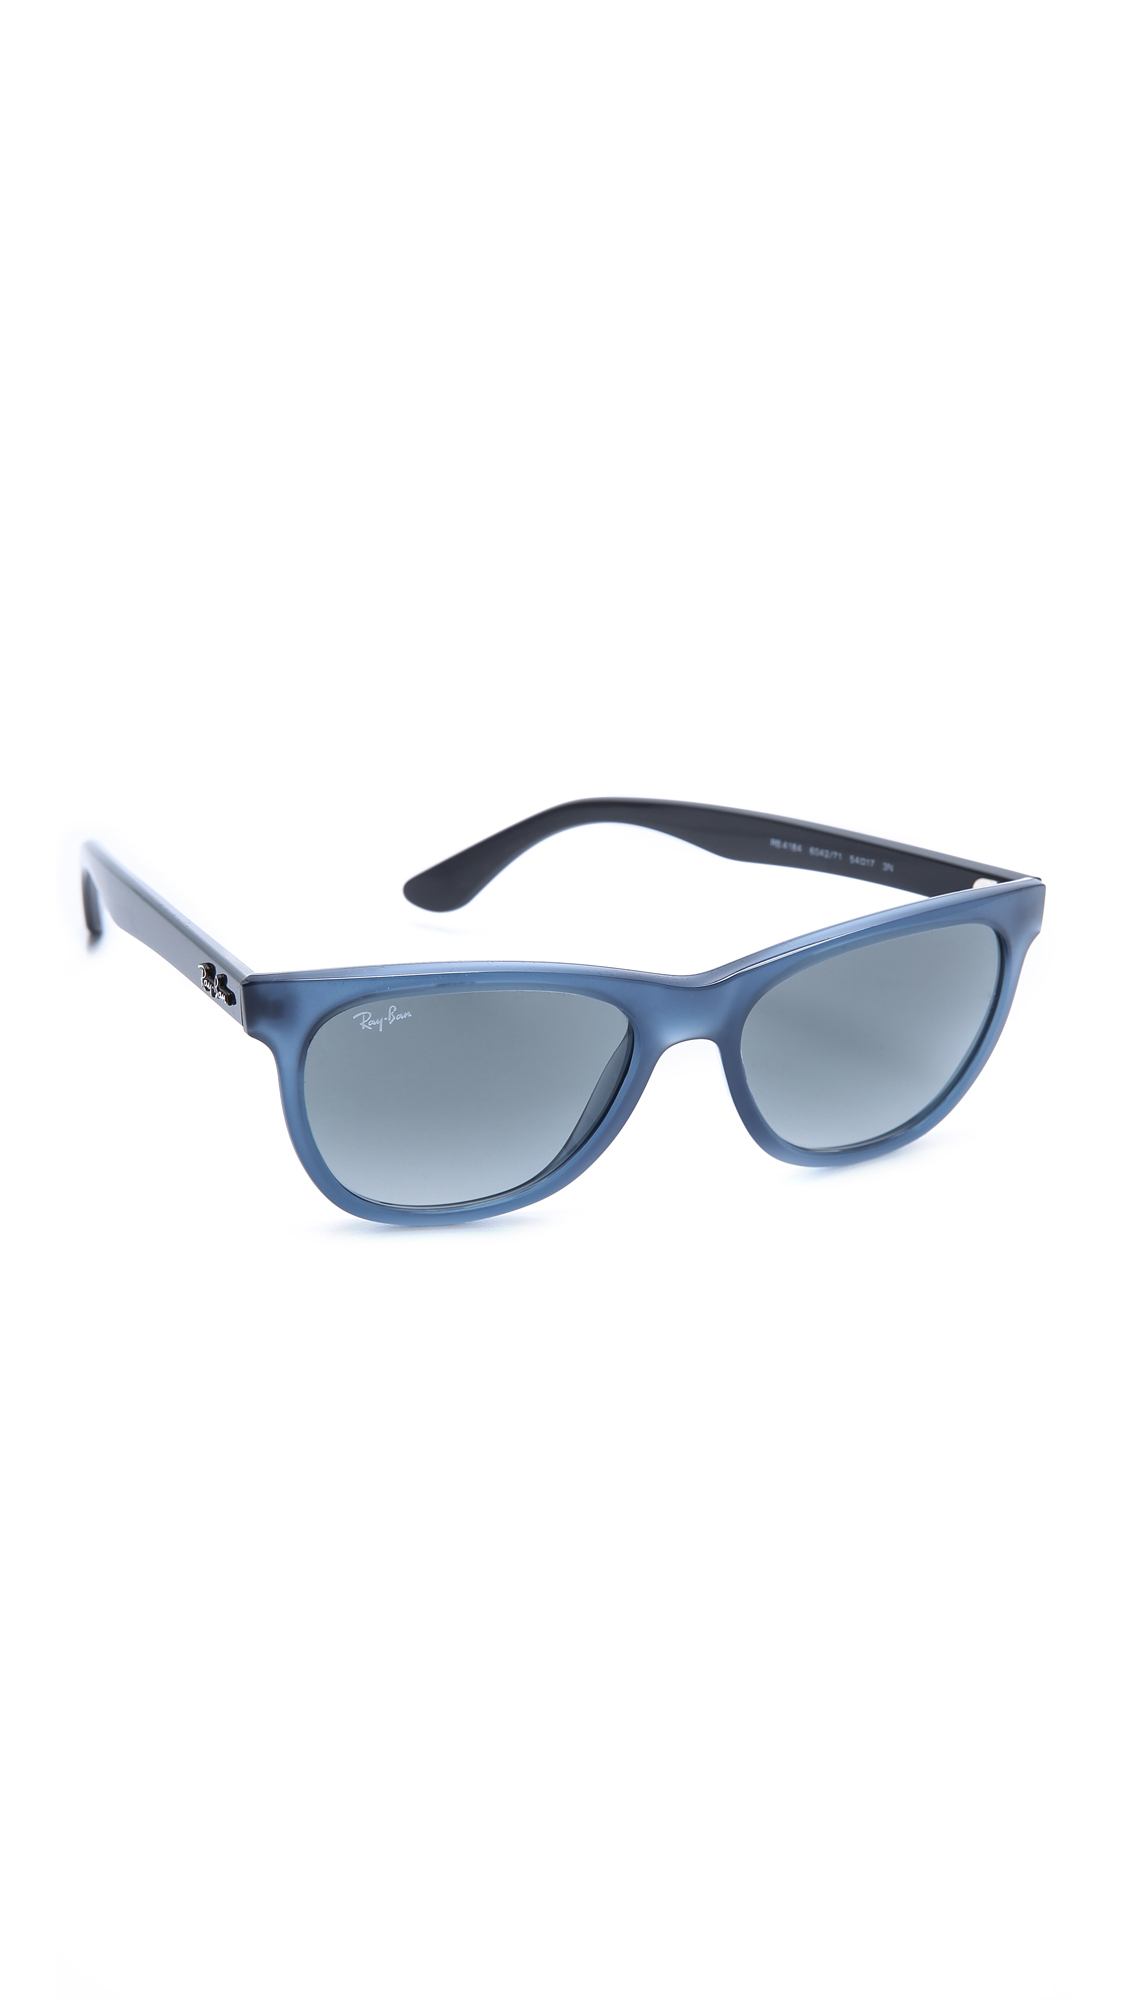 954c2266fbd Ray Ban Highstreet 57mm Clubmaster Sunglasses